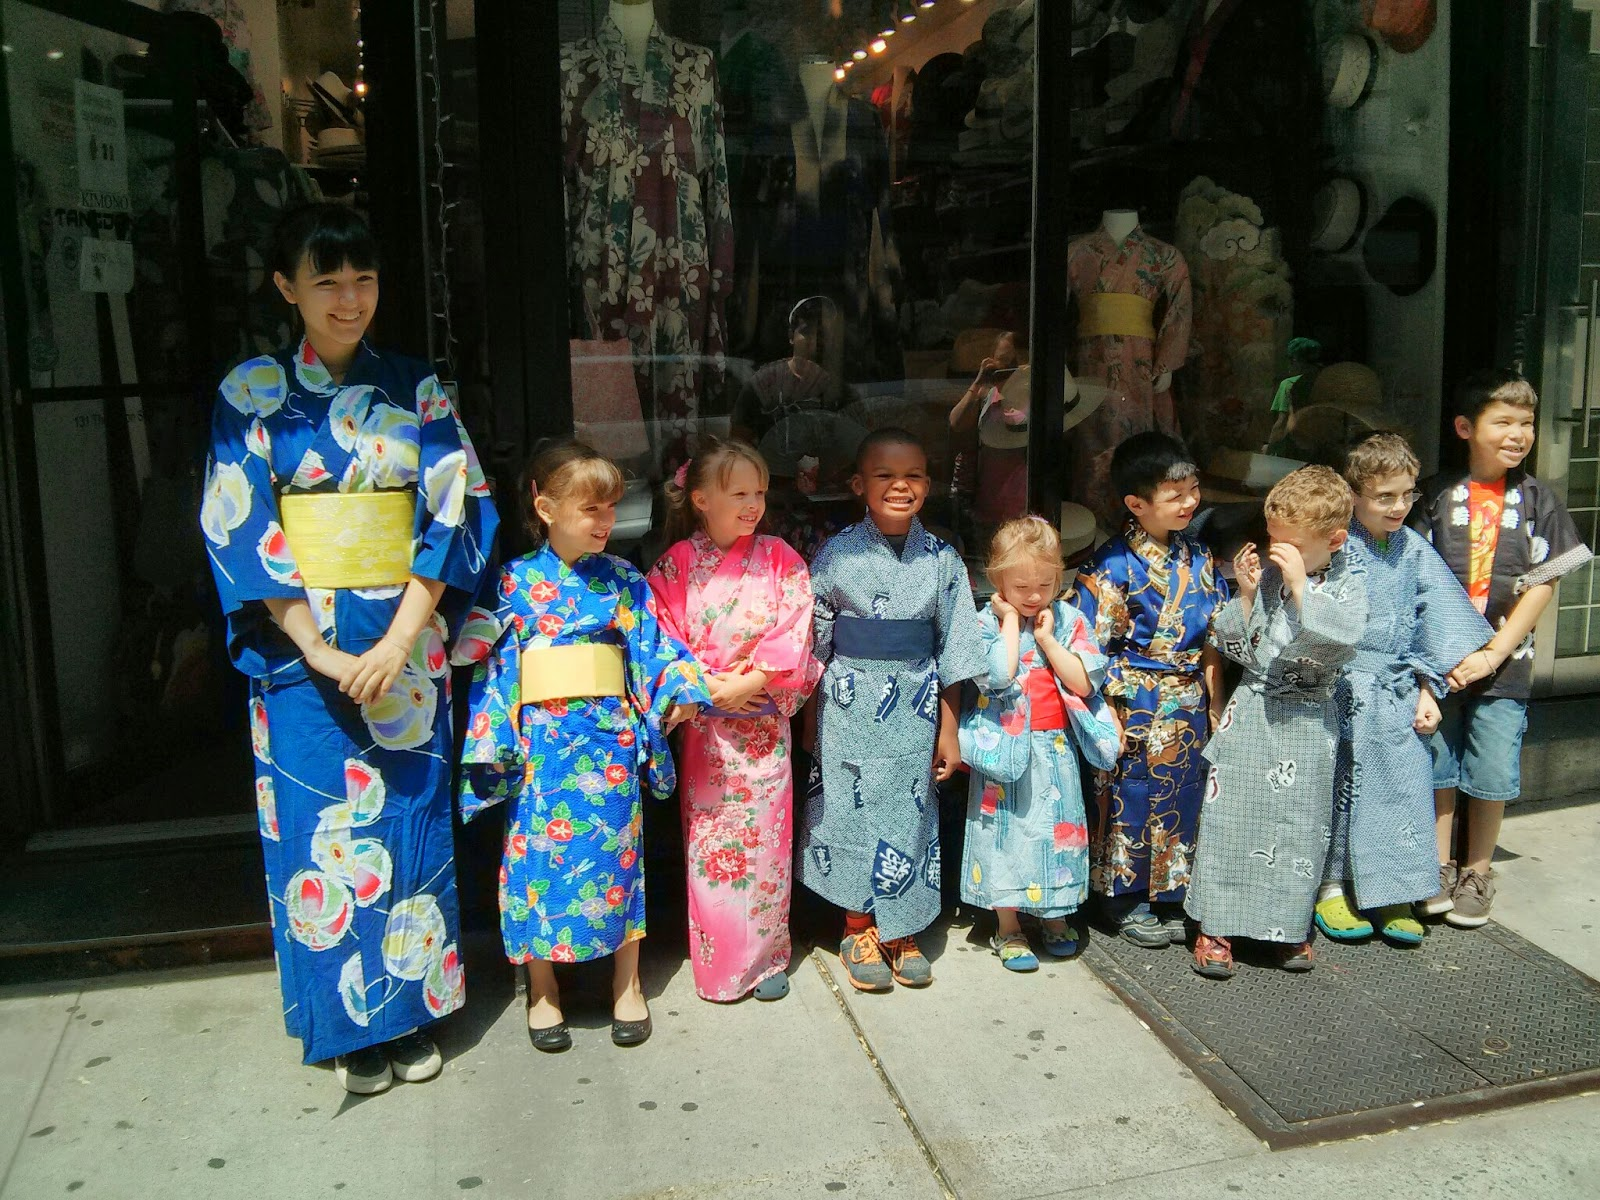 school international day Japanese Kimonos for small boys and girls at Kimono House New York City